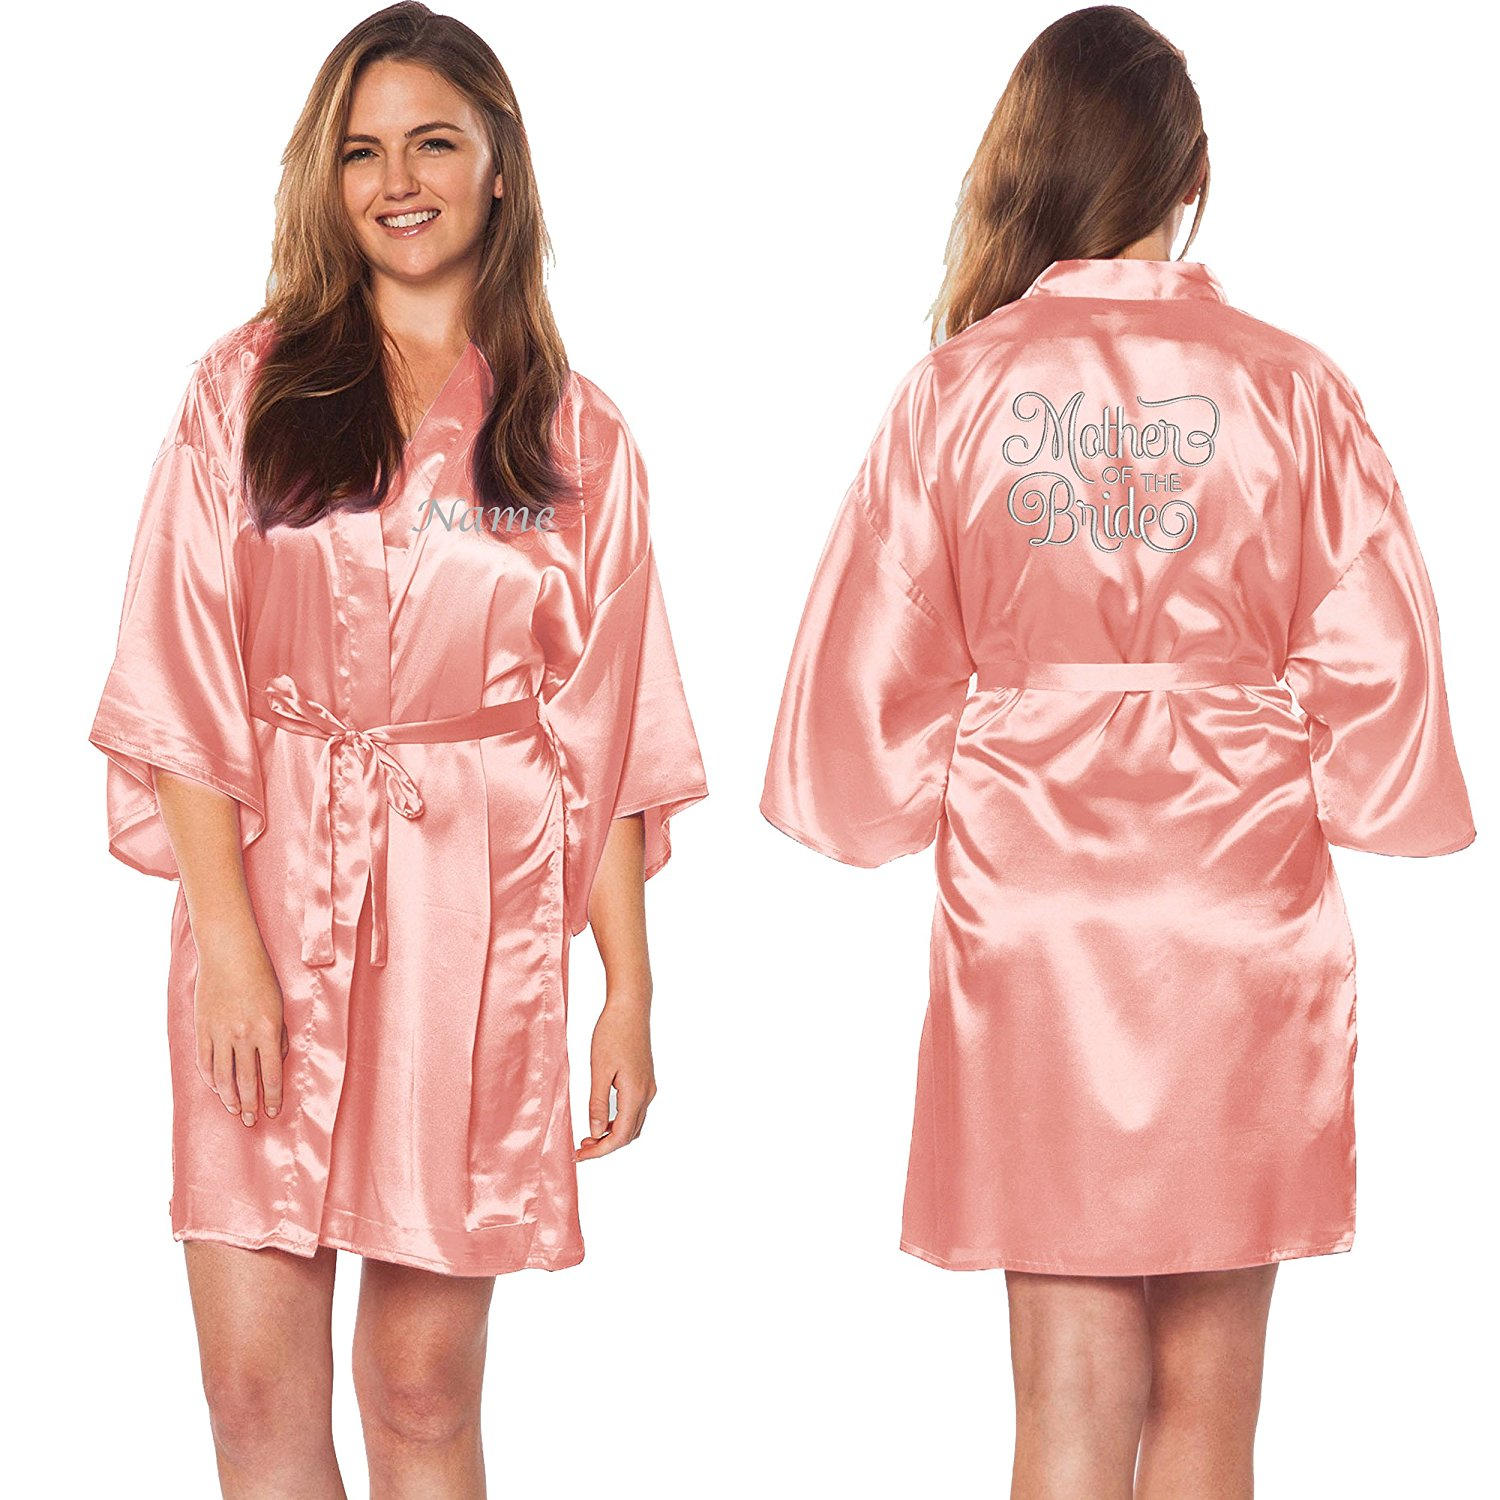 Custom Apparel R Us Mother of The Bride Silver Embroidered Customize Name Satin Robes Wedding Party